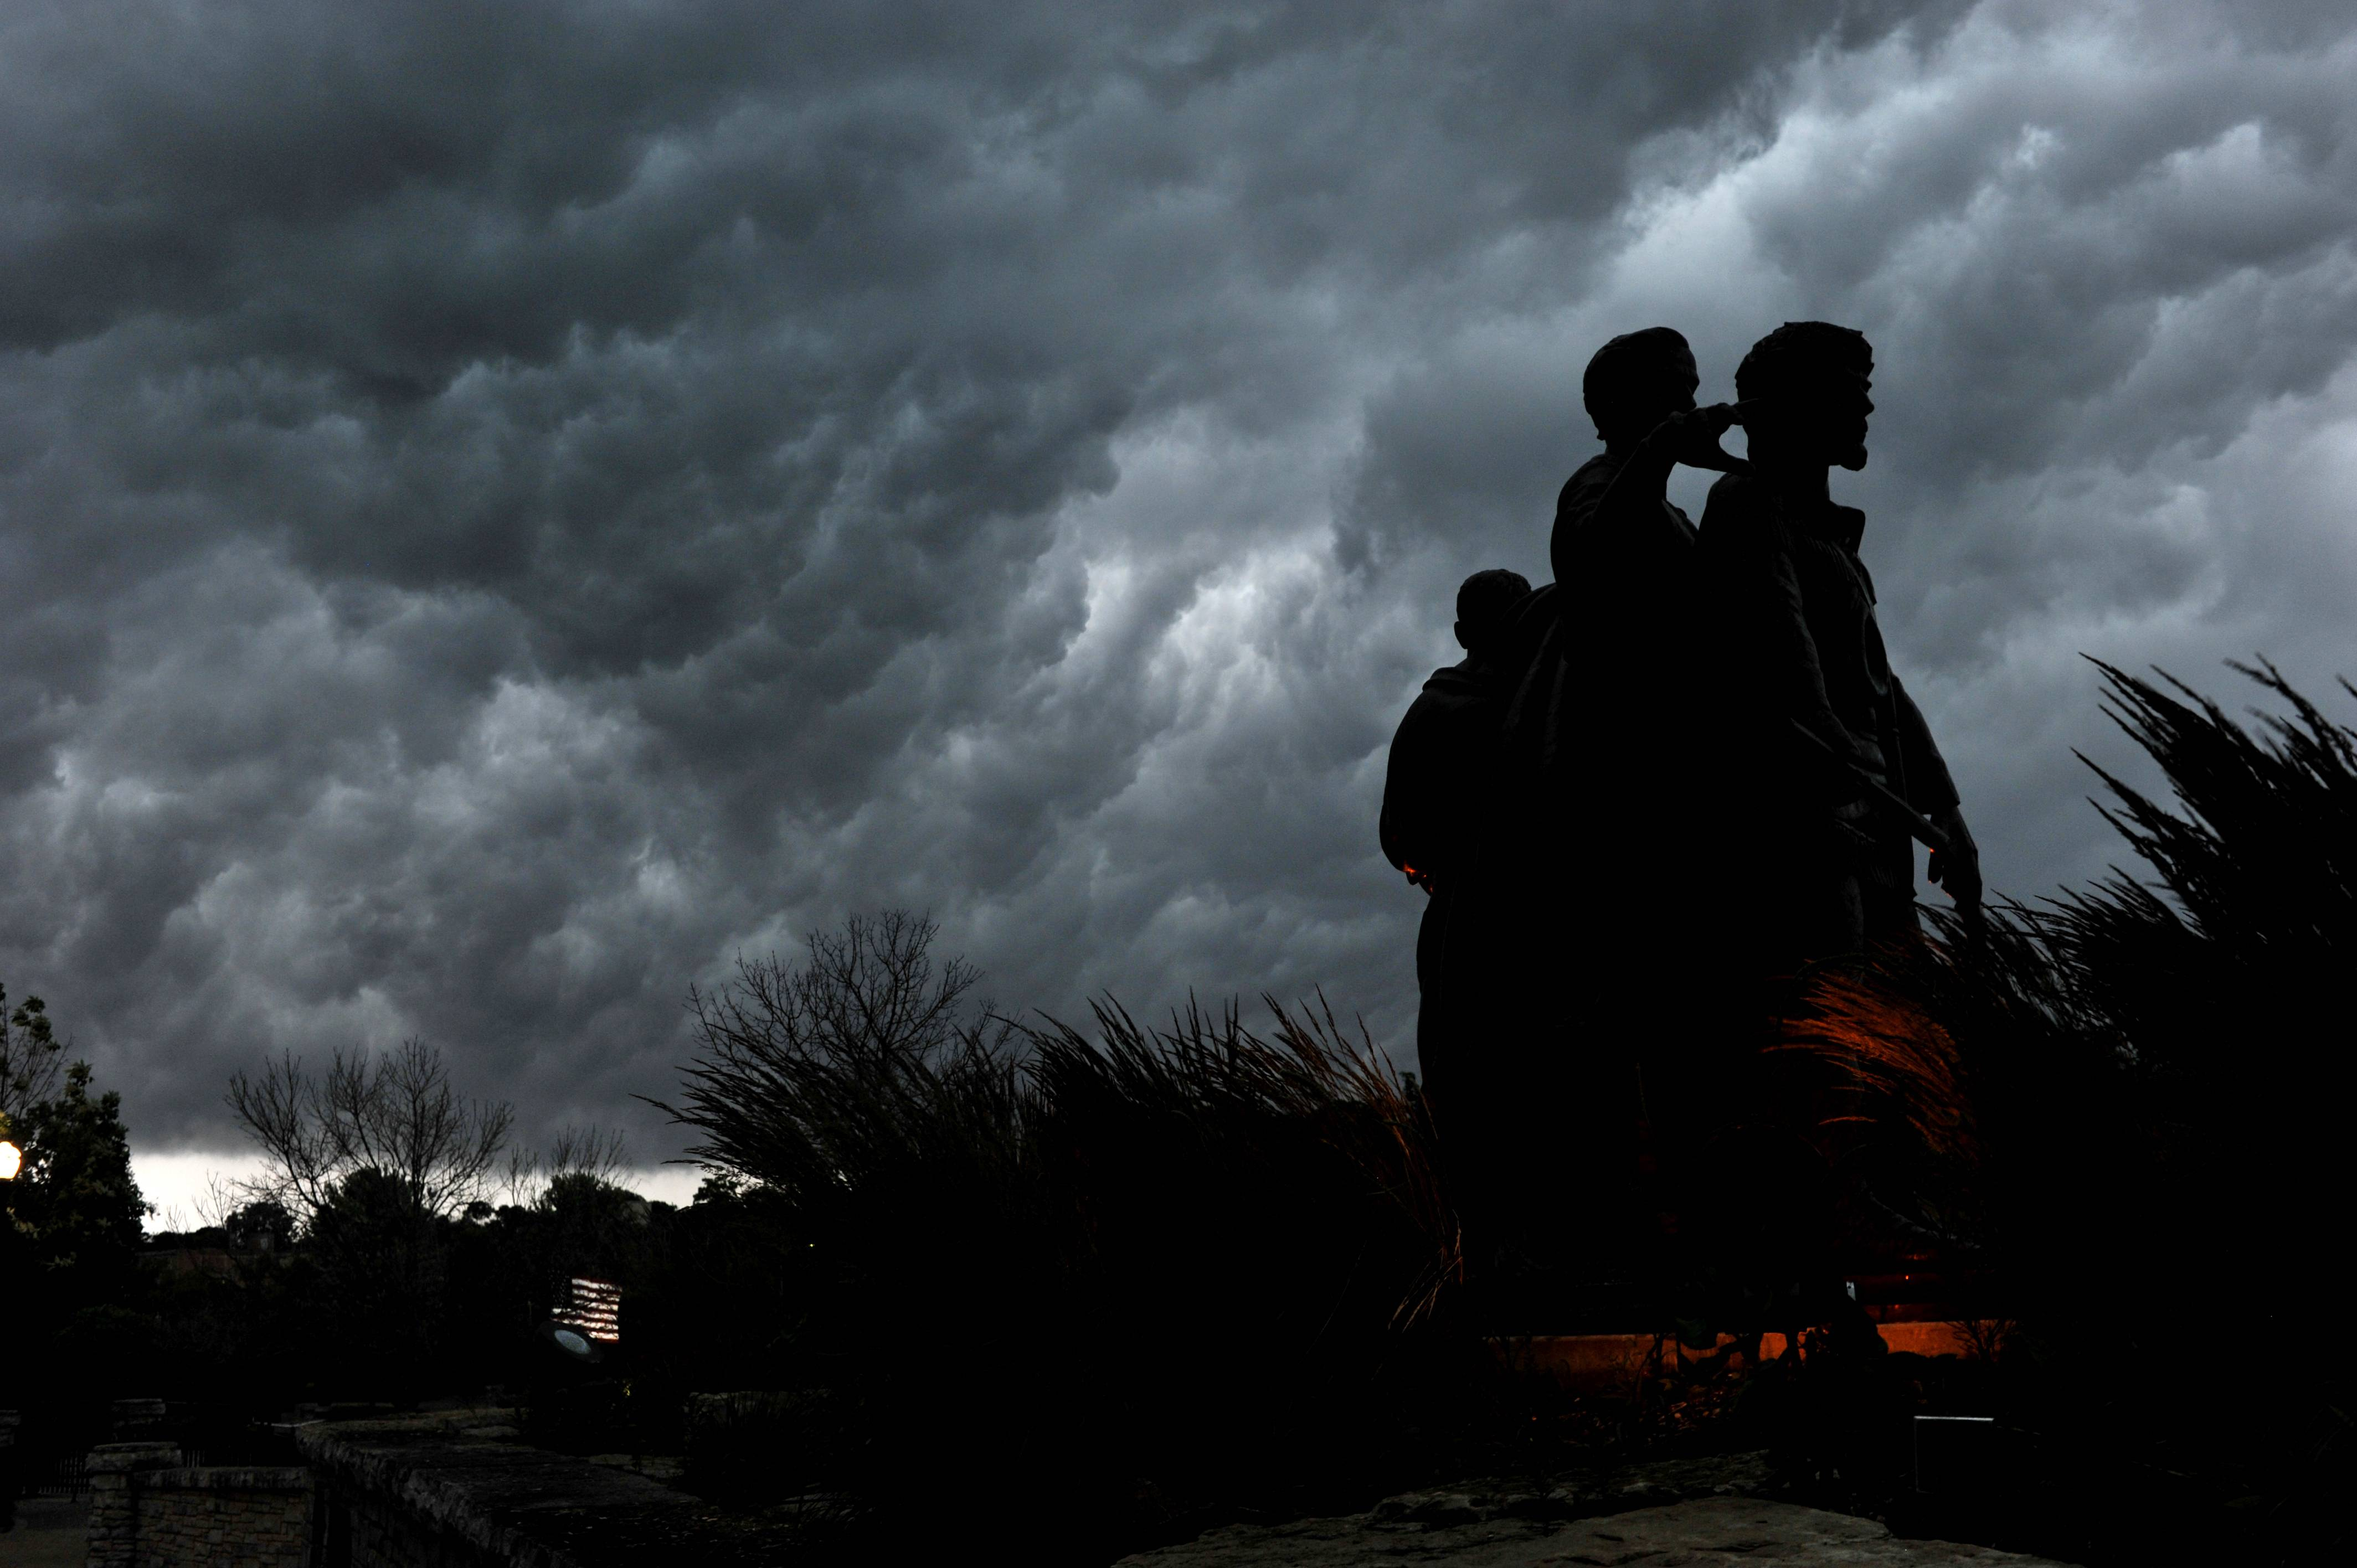 Dark storm clouds rolls in near the Pioneer Family Memorial on the Fox River Monday evening in Elgin.